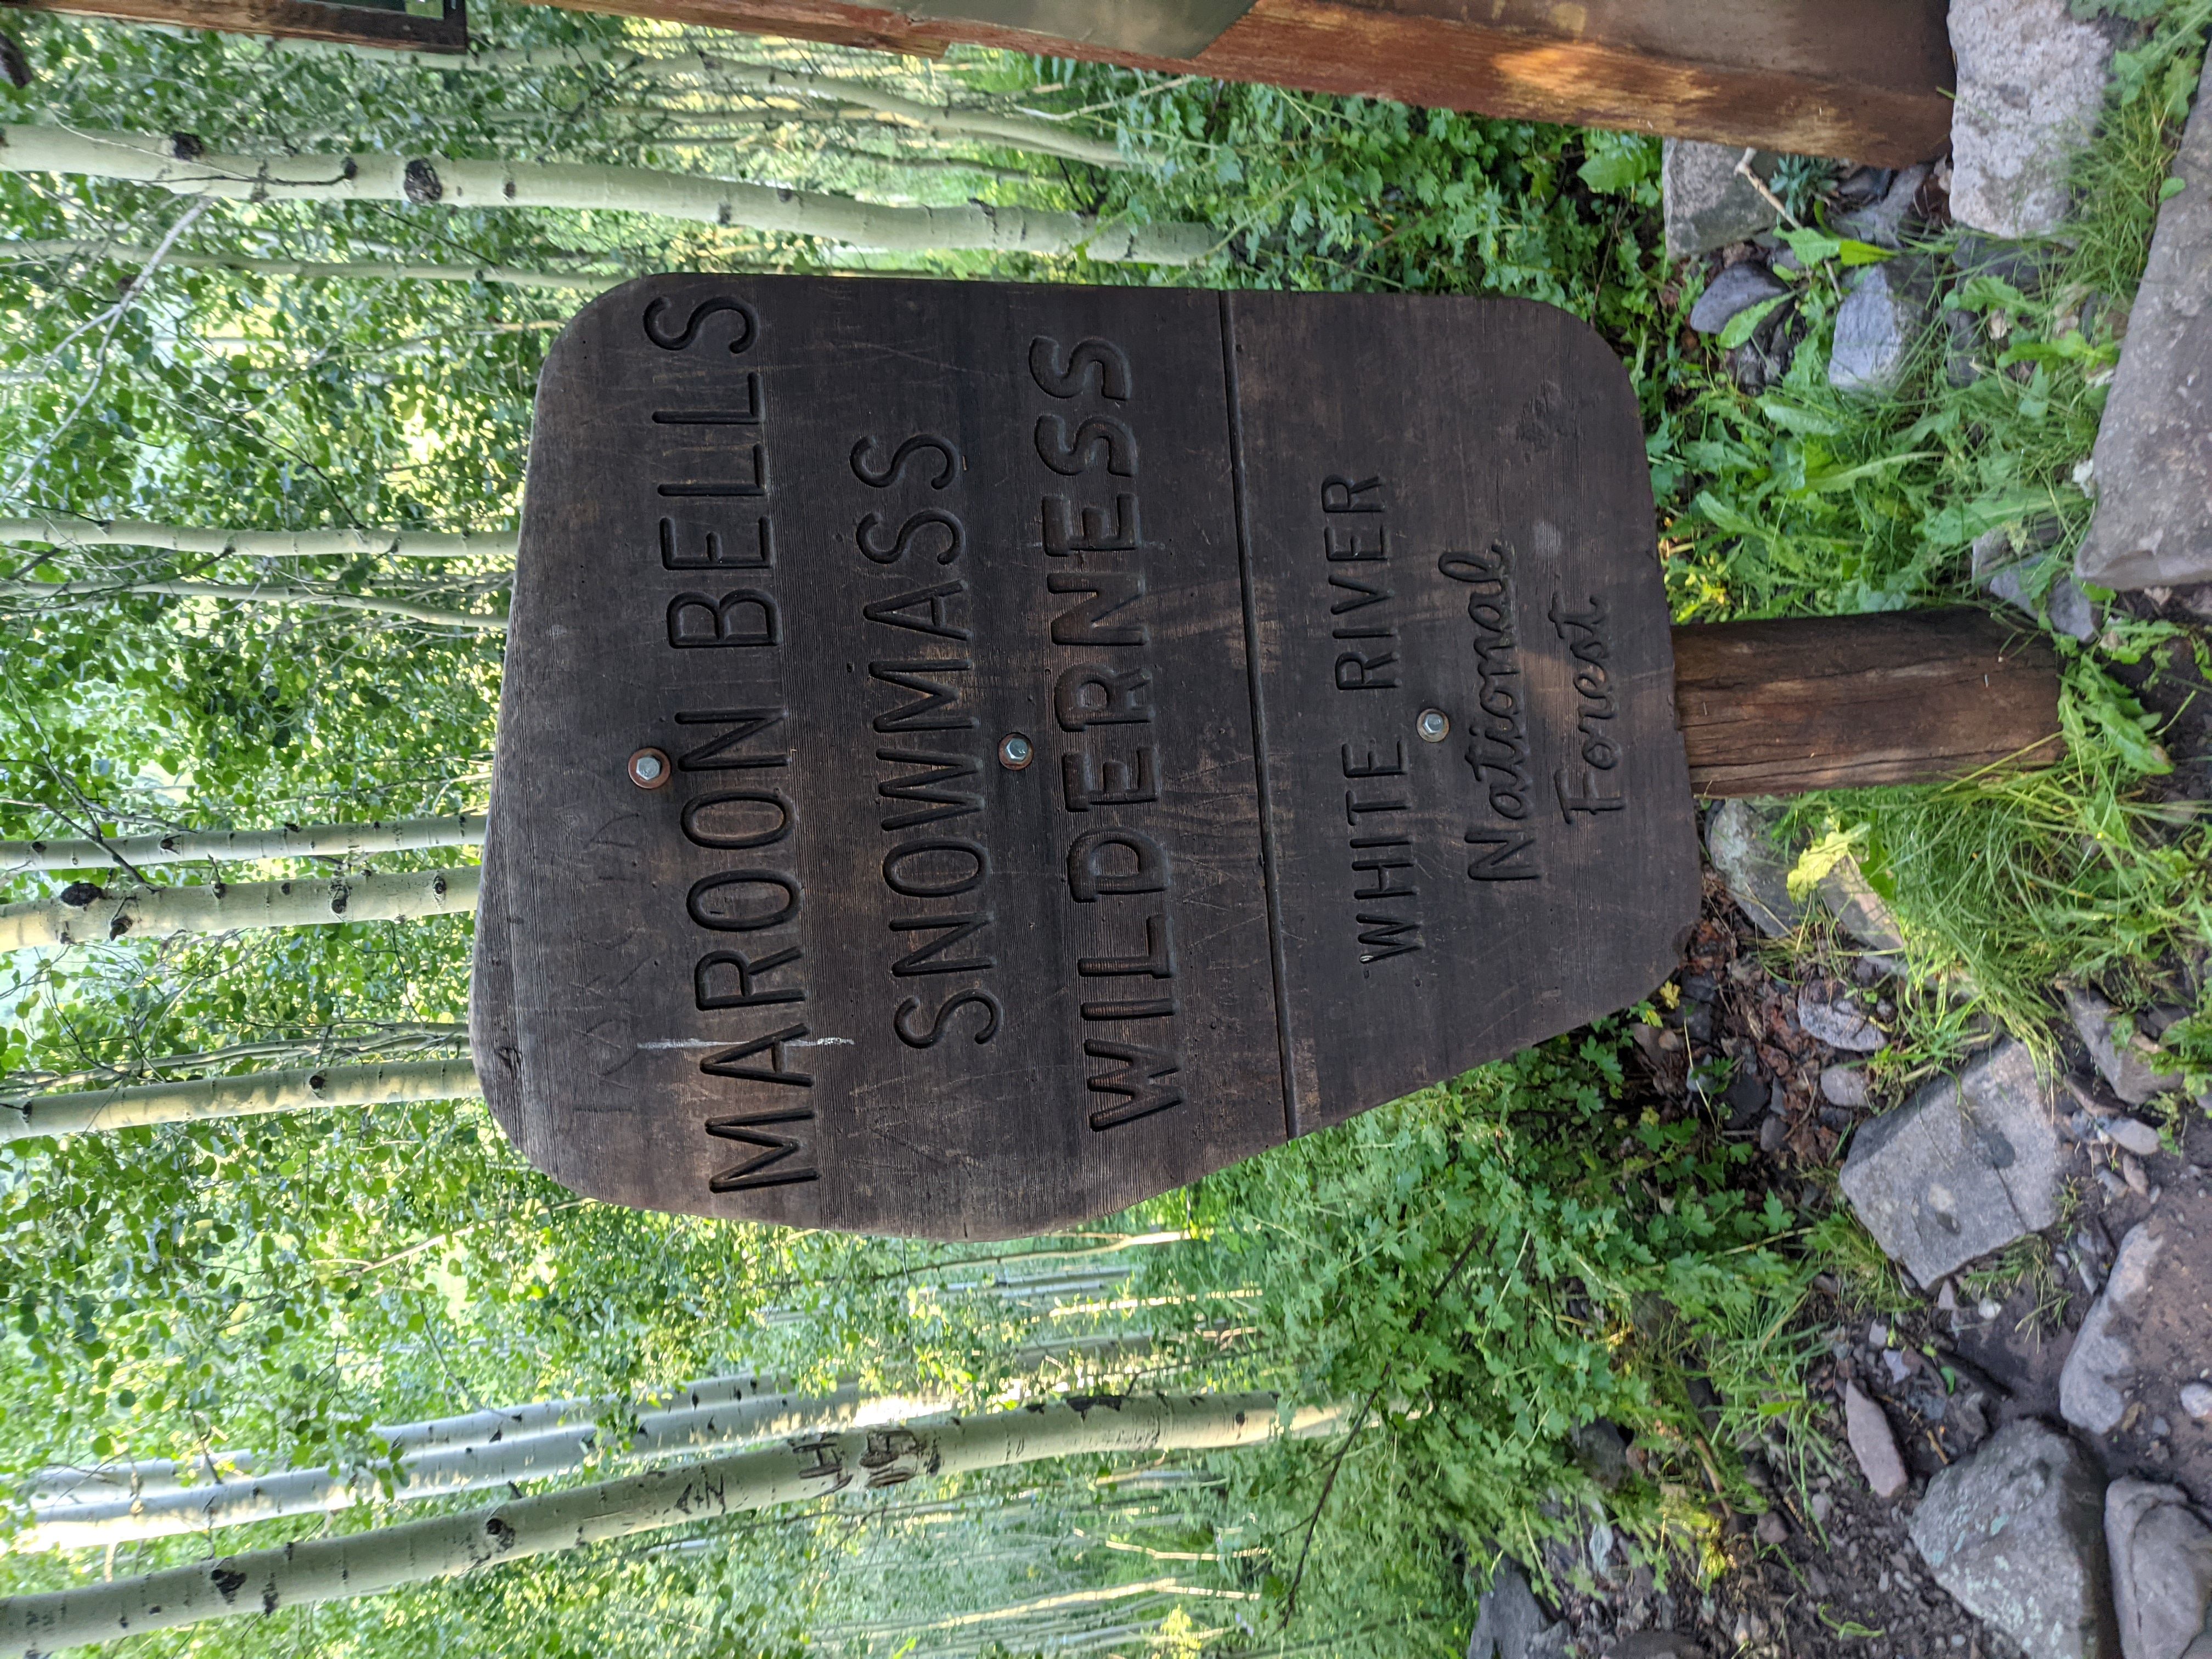 The Maroon Bells Wilderness Sign, we're now on the trail, heading towards the Four Pass Loop.